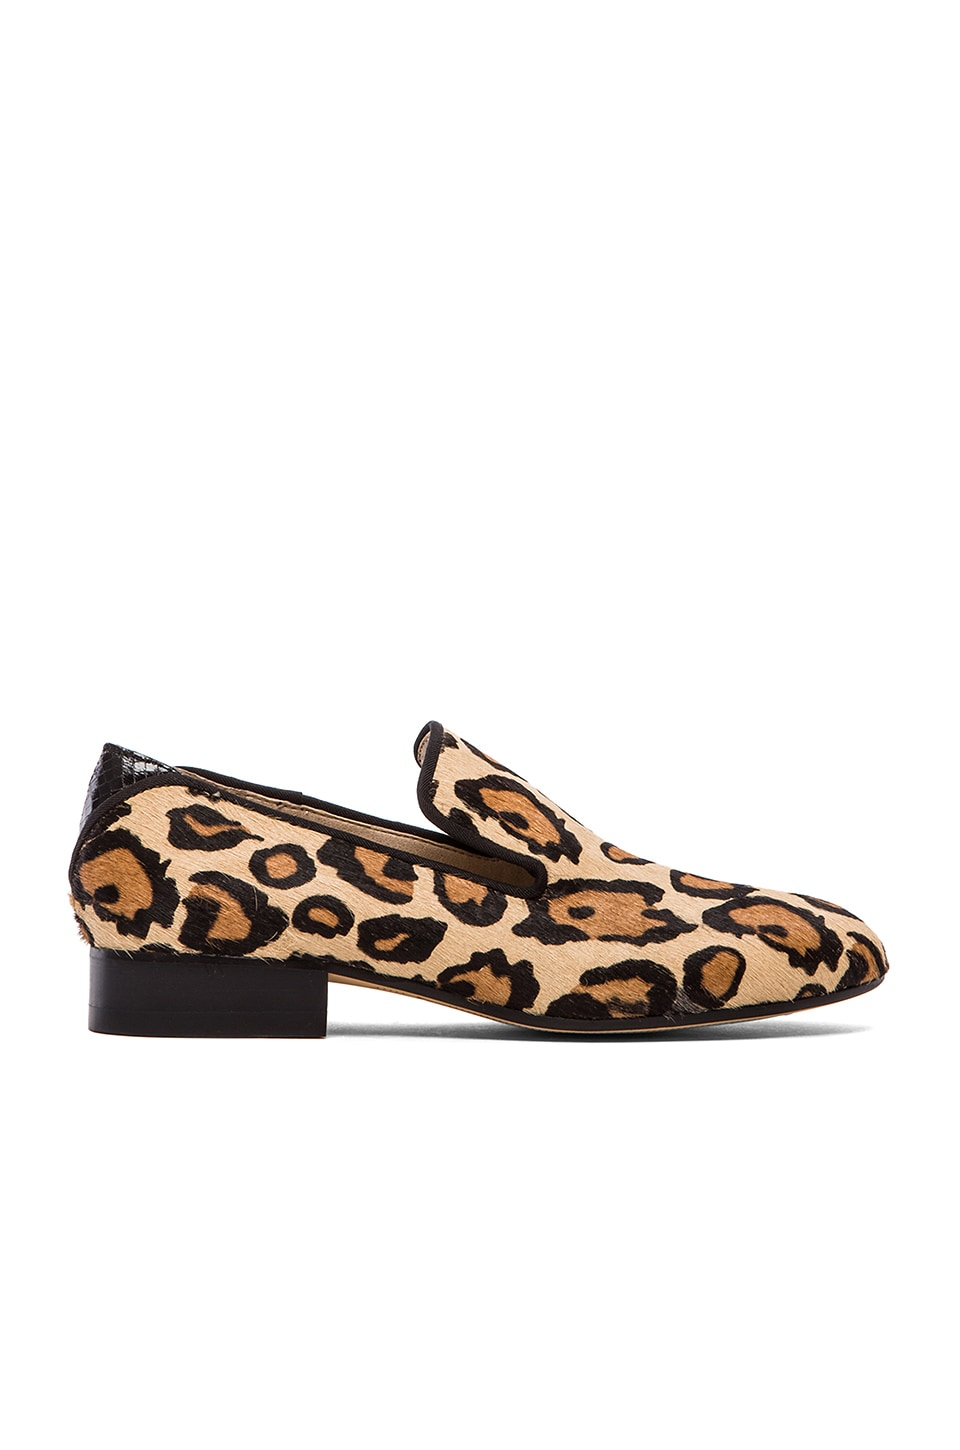 Sam Edelman Kalinda Loafer in New Nude Leopard Haircalf